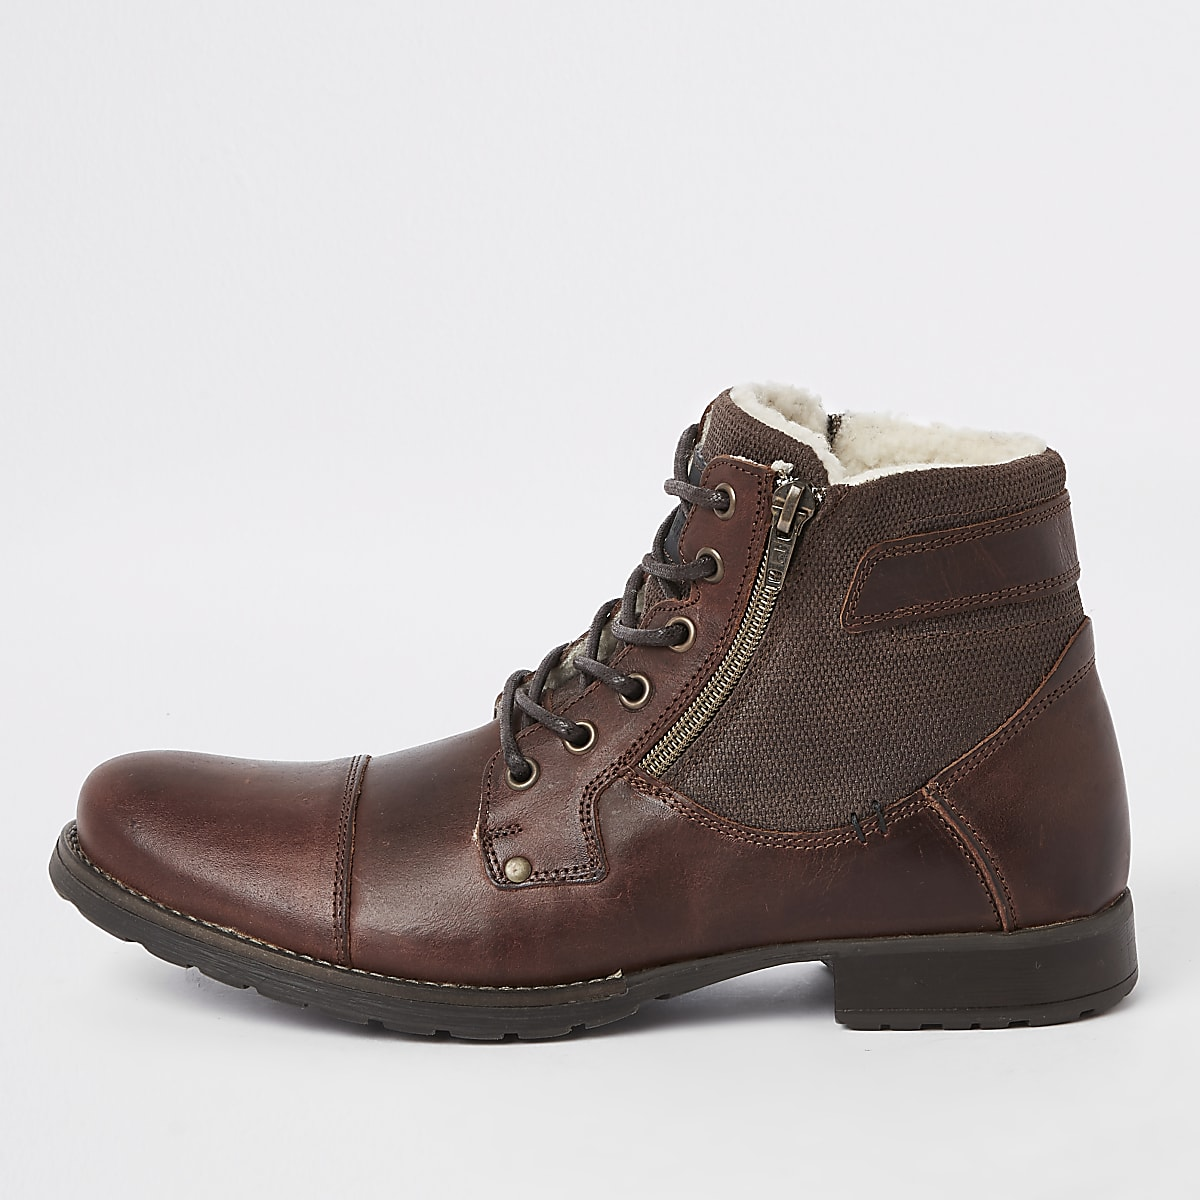 Brown leather zip side lace-up boots